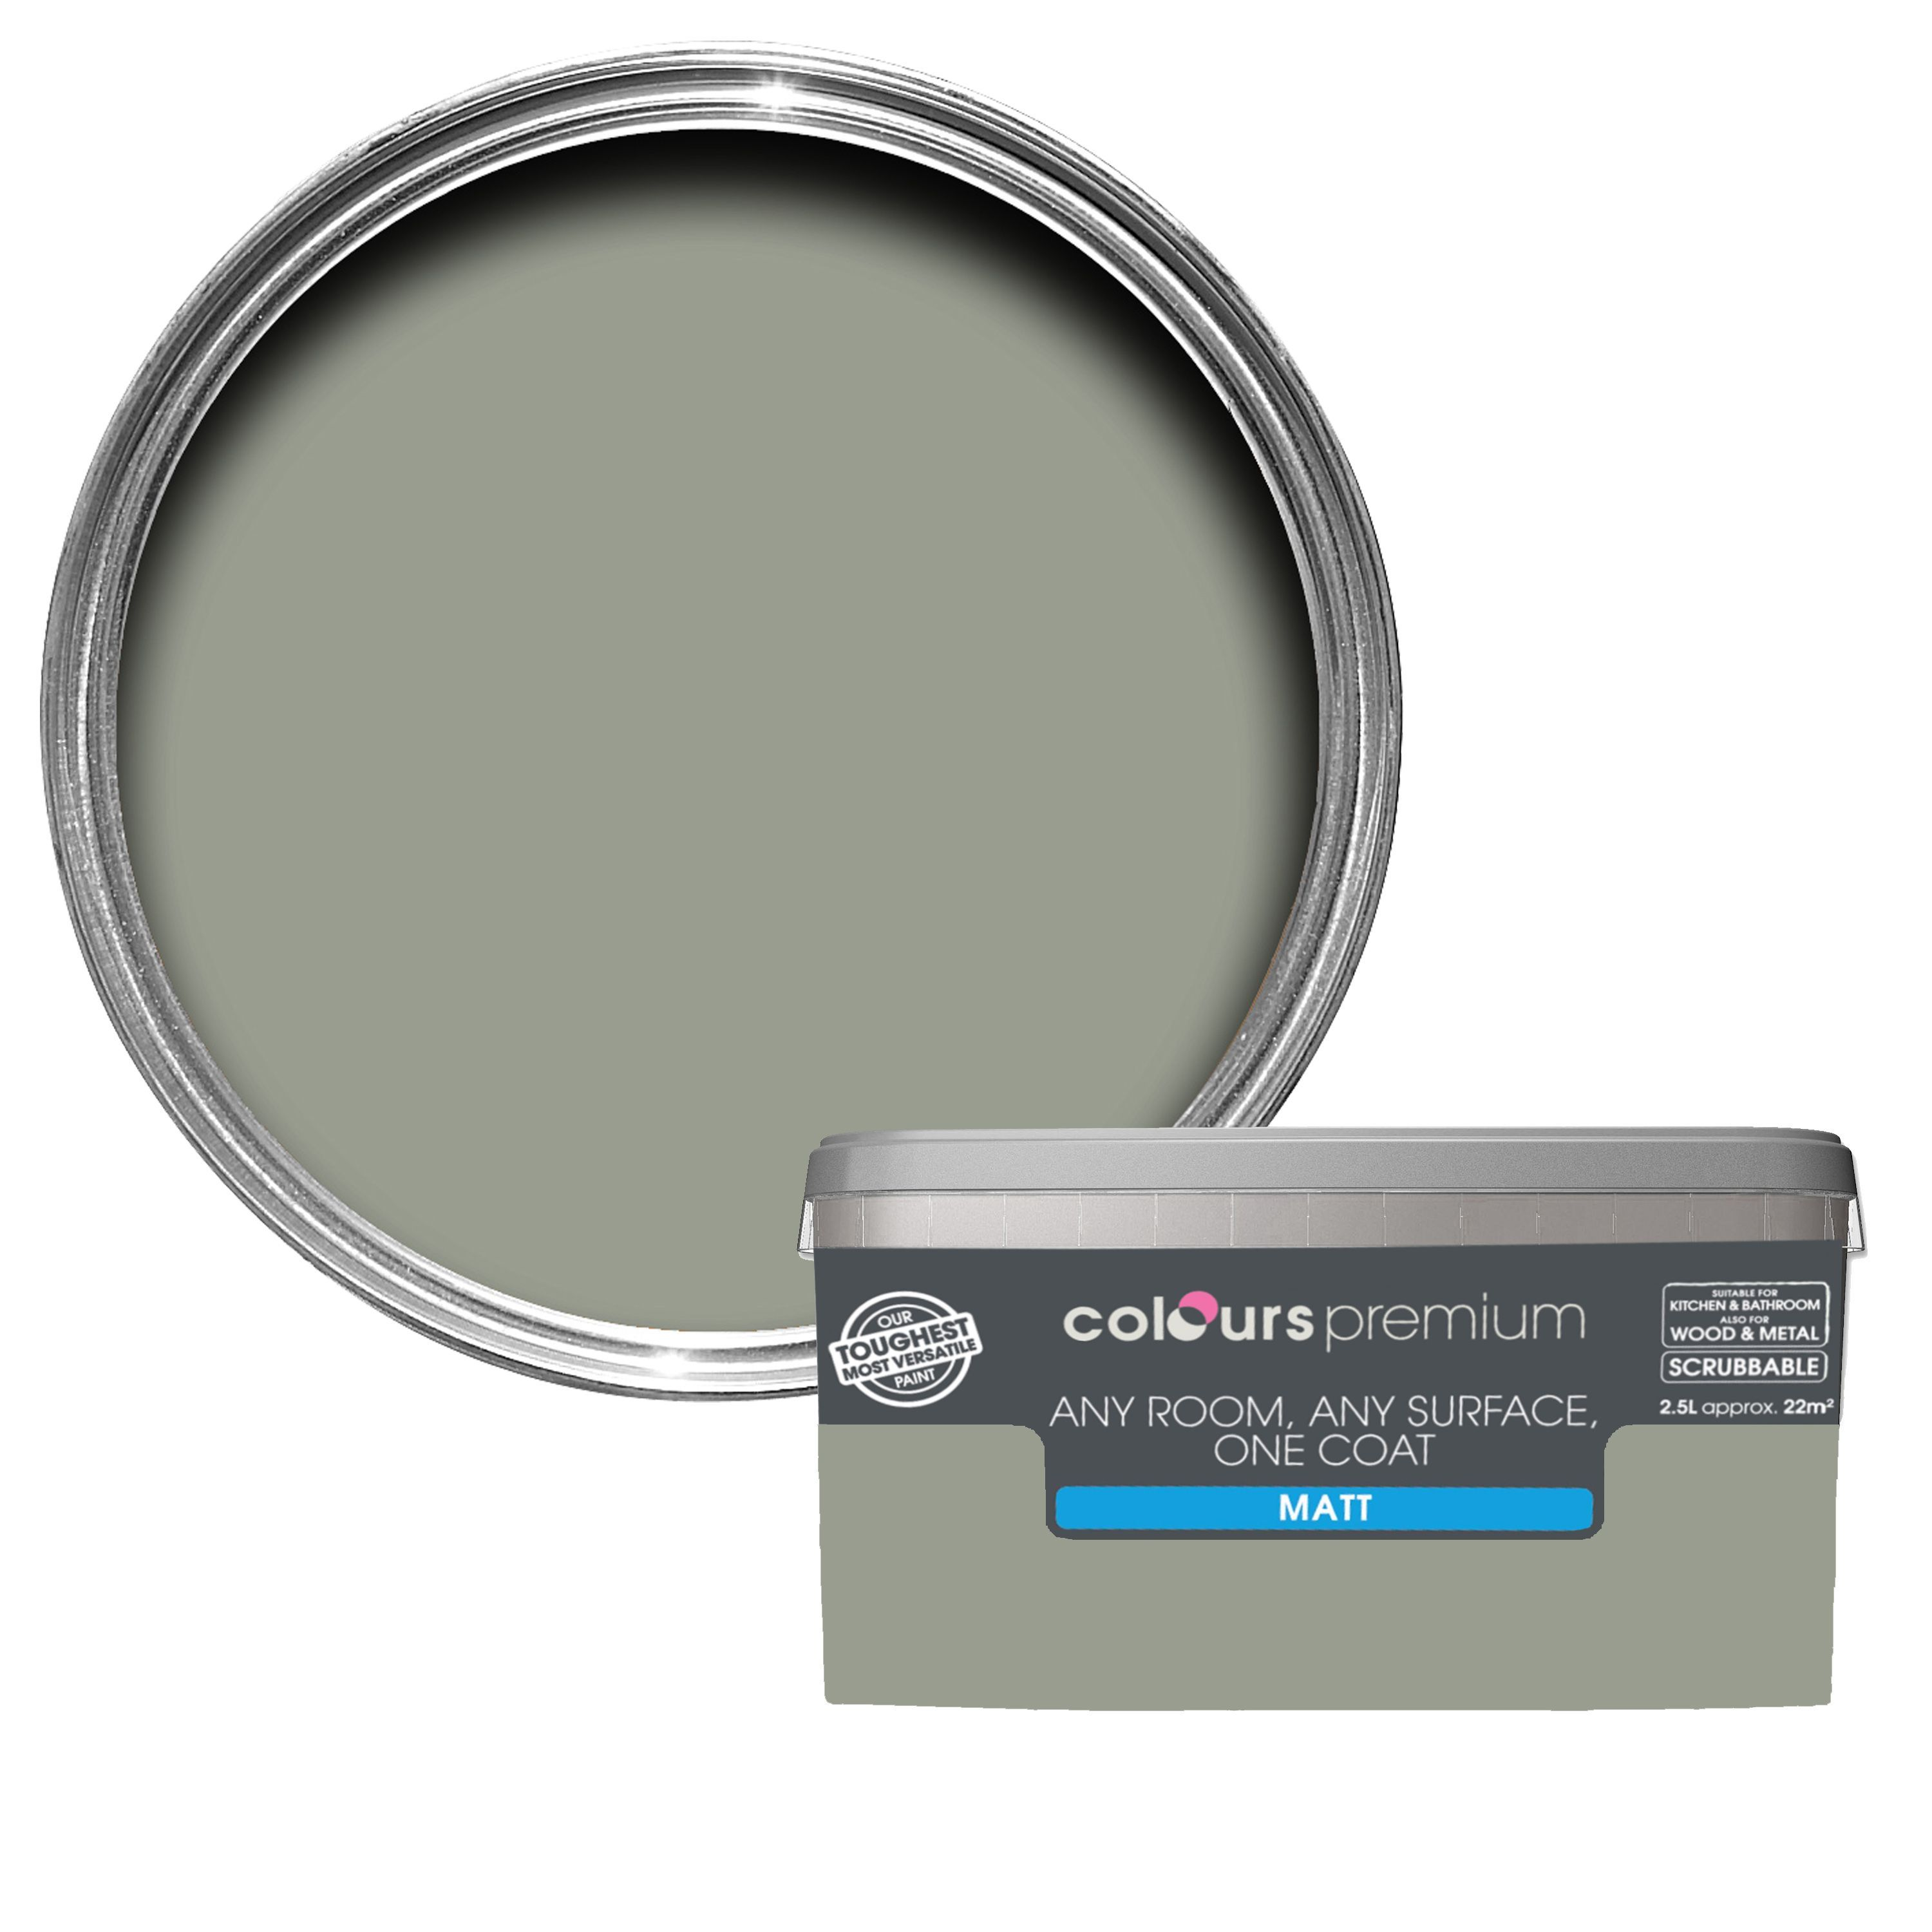 Diy supplies accessories diy at b q - Colours Premium Any Room One Coat Fossilised Matt Emulsion Paint 2 5l Departments Diy